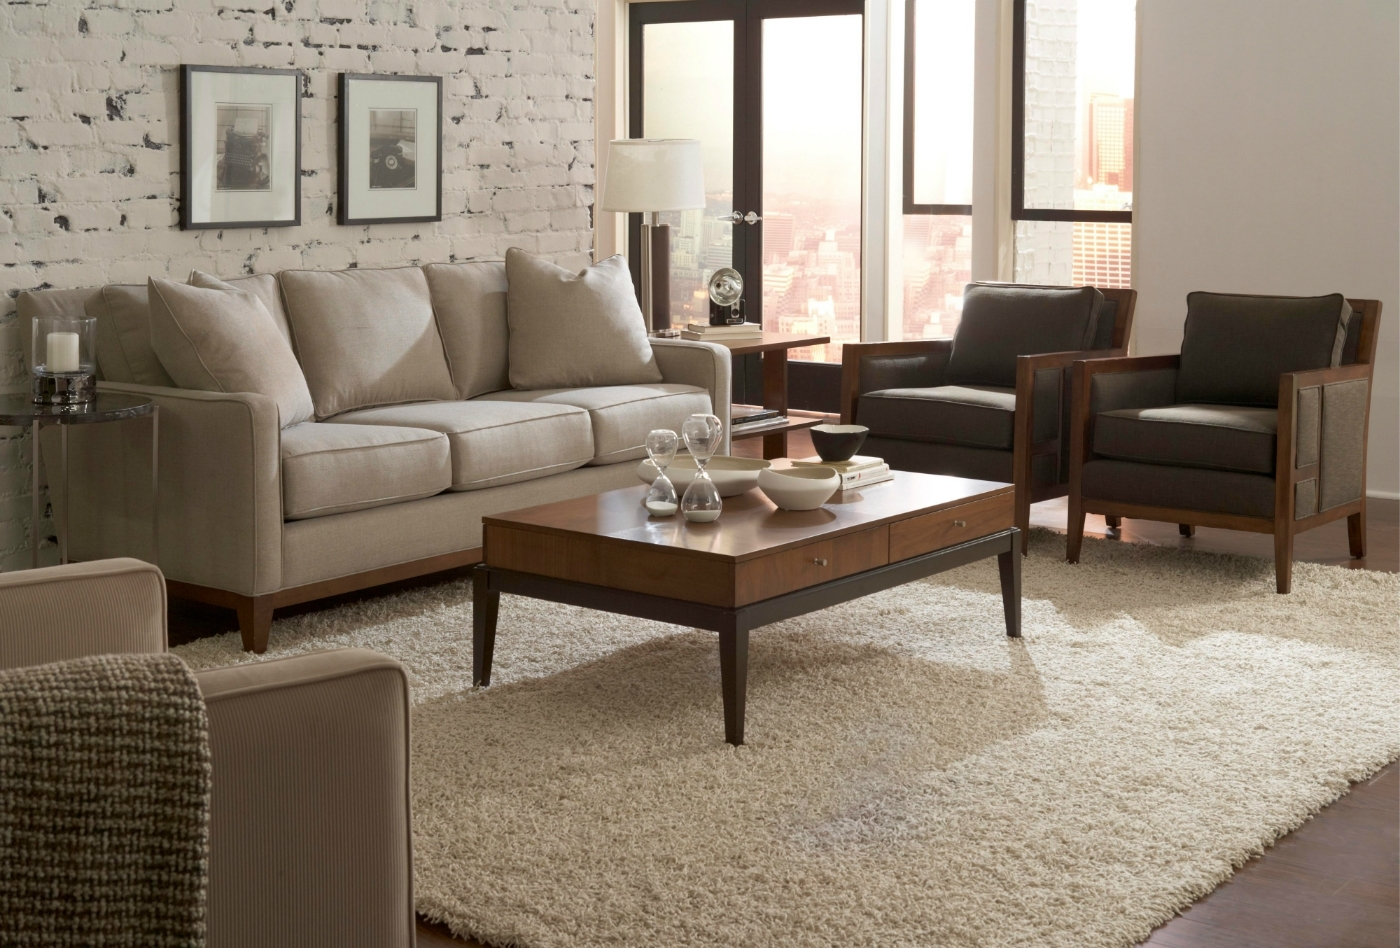 Best And Newest Sofa With Chairs With Regard To Quinn Living Room Sofa And Chairs – Chambers Furniture (View 3 of 20)